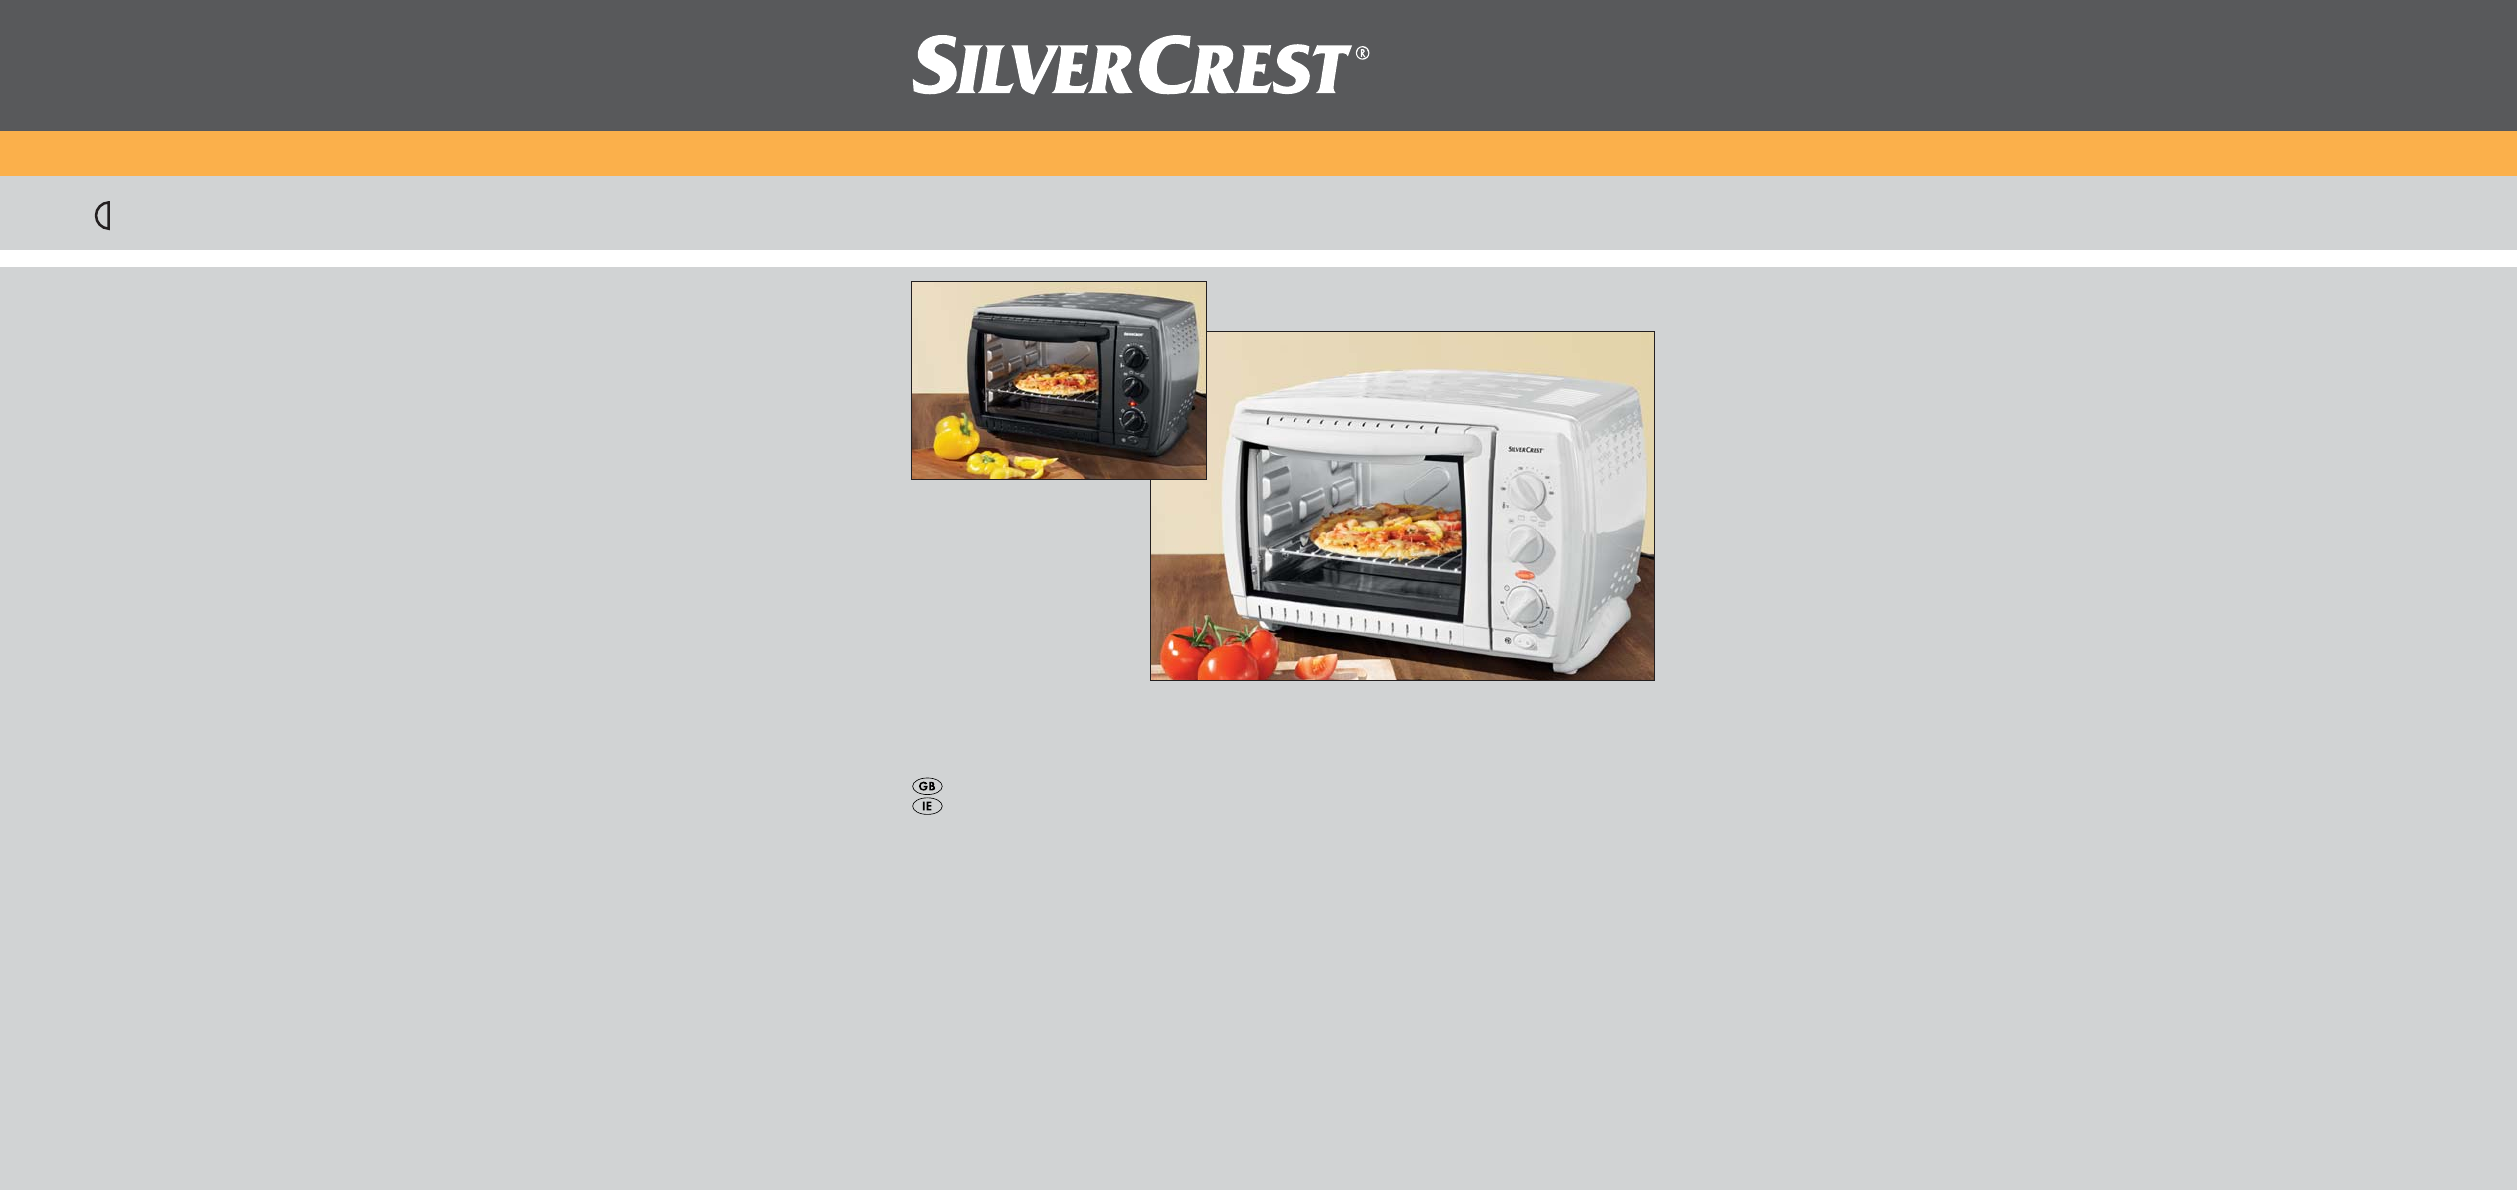 silvercrest oven sgb 1380 a1 user guide manualsonline com rh kitchen manualsonline com Nortel Norstar Phone System Manual Telephone User Manuals